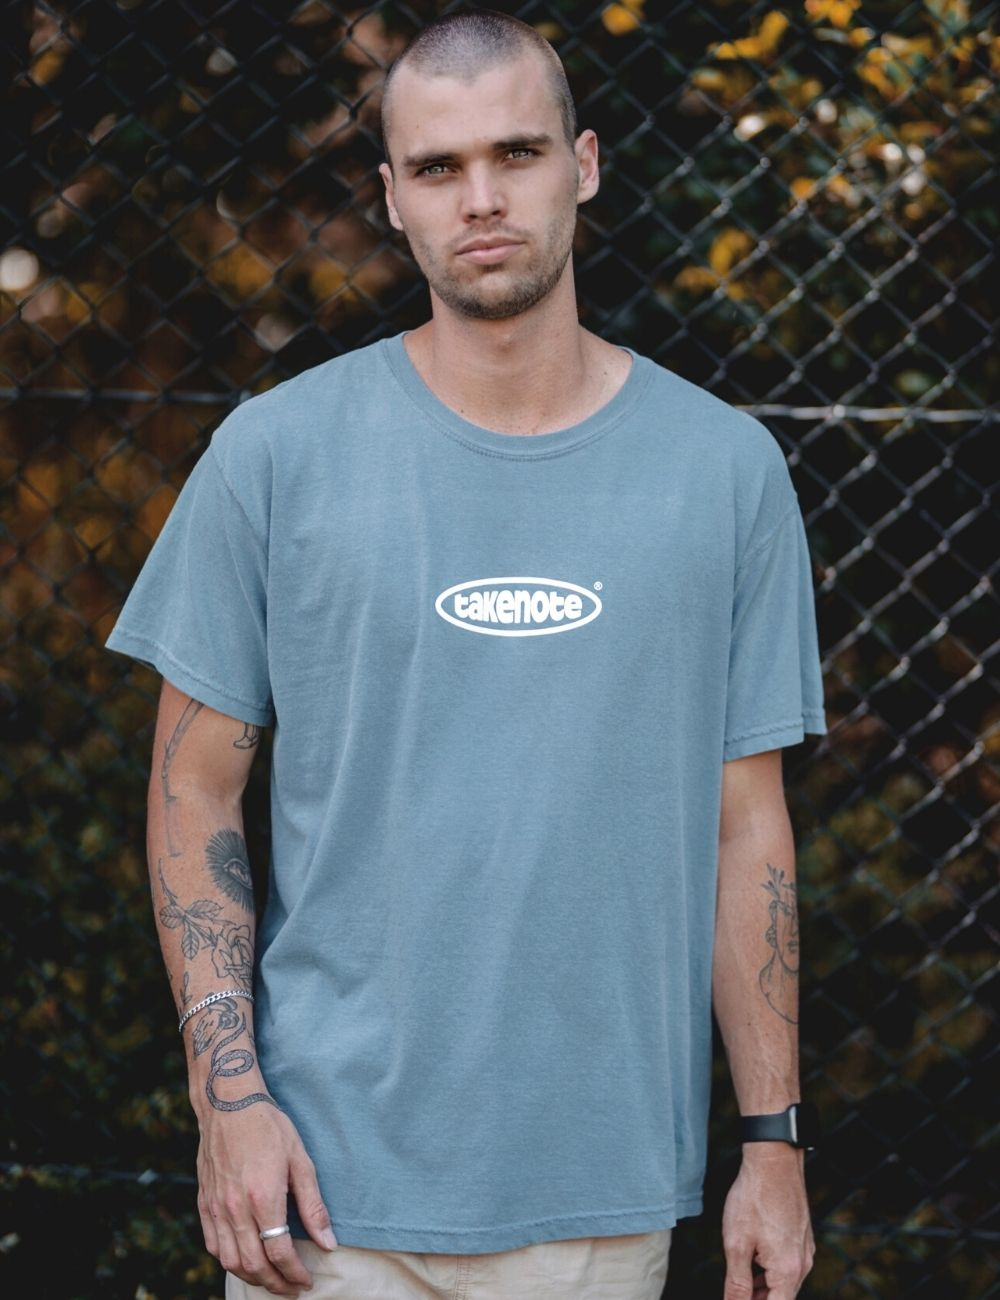 takenote® Faded Court Tee in Washed Denim